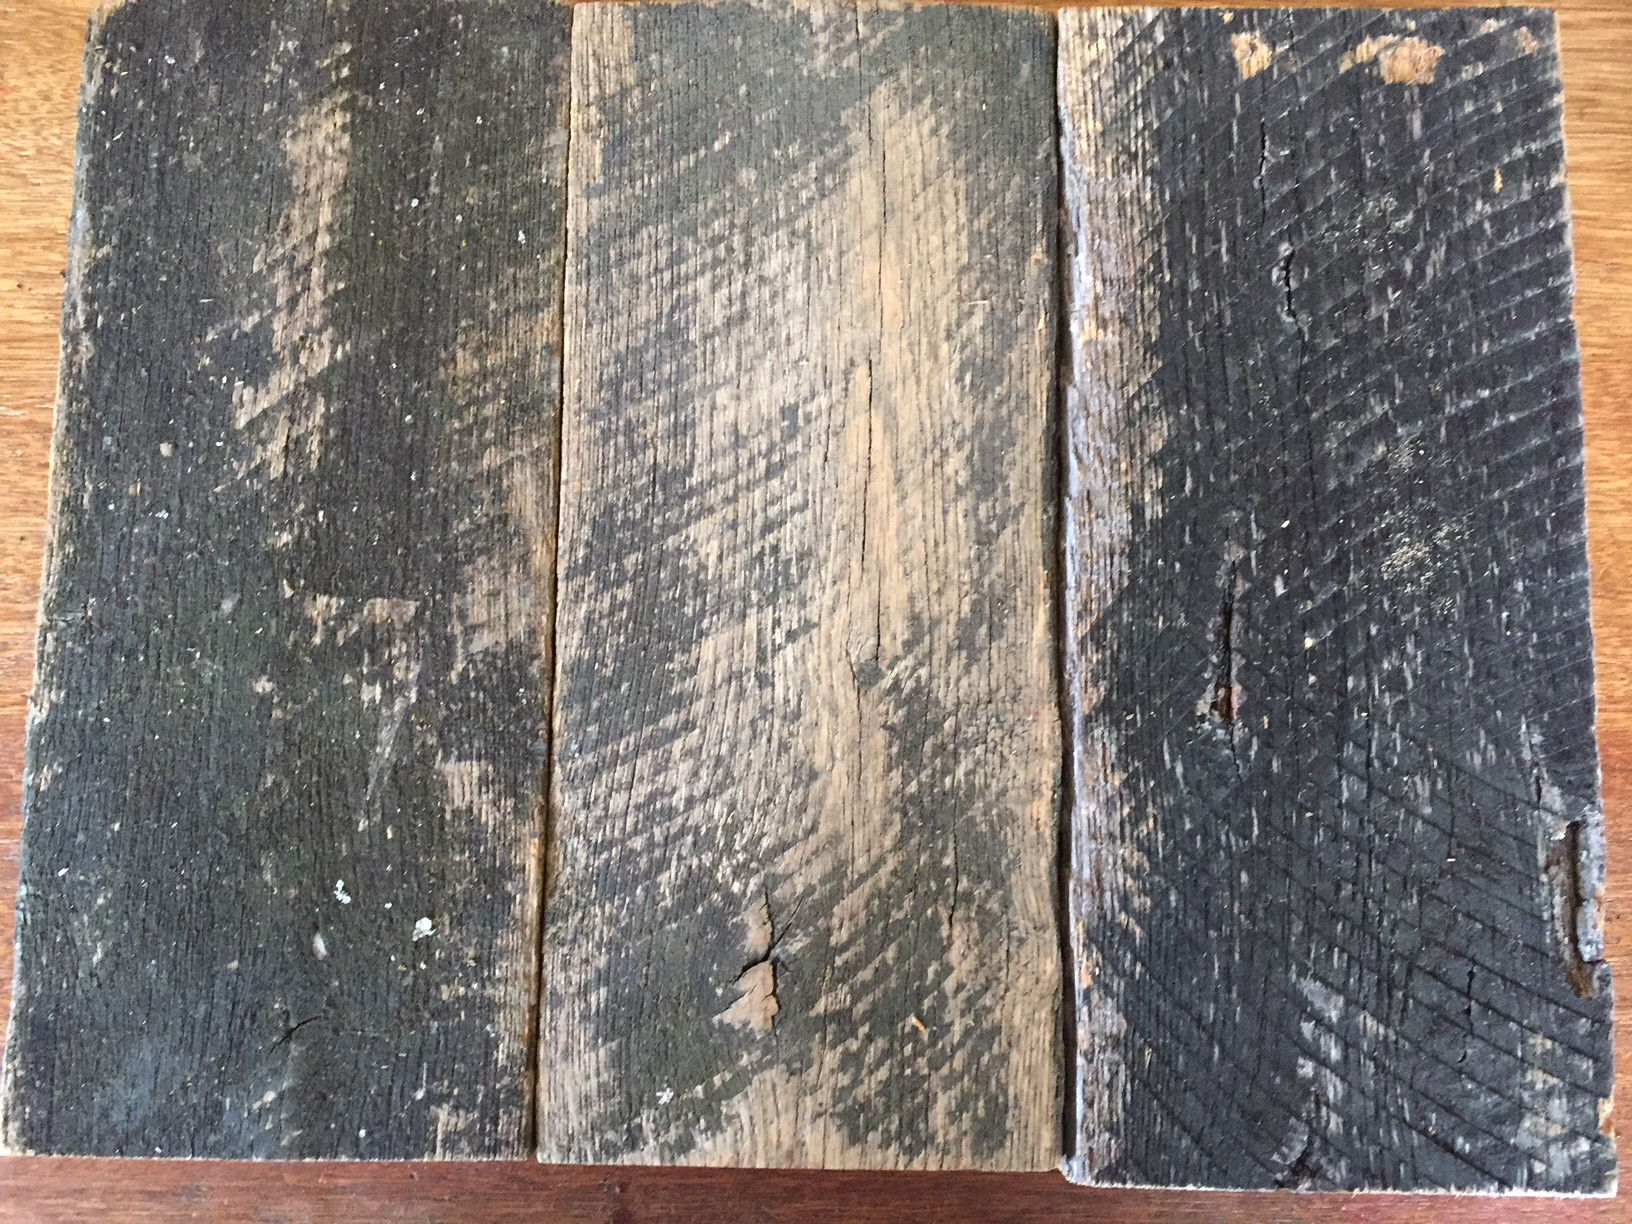 hardwood floor refinishing northern ky of heritage salvage heritage salvage for from stone street farm owned by the kendall jackson wine co gorgeous 4 4 oak 12 5 a stick rough sawn with a perfect texture coming out of kentucky